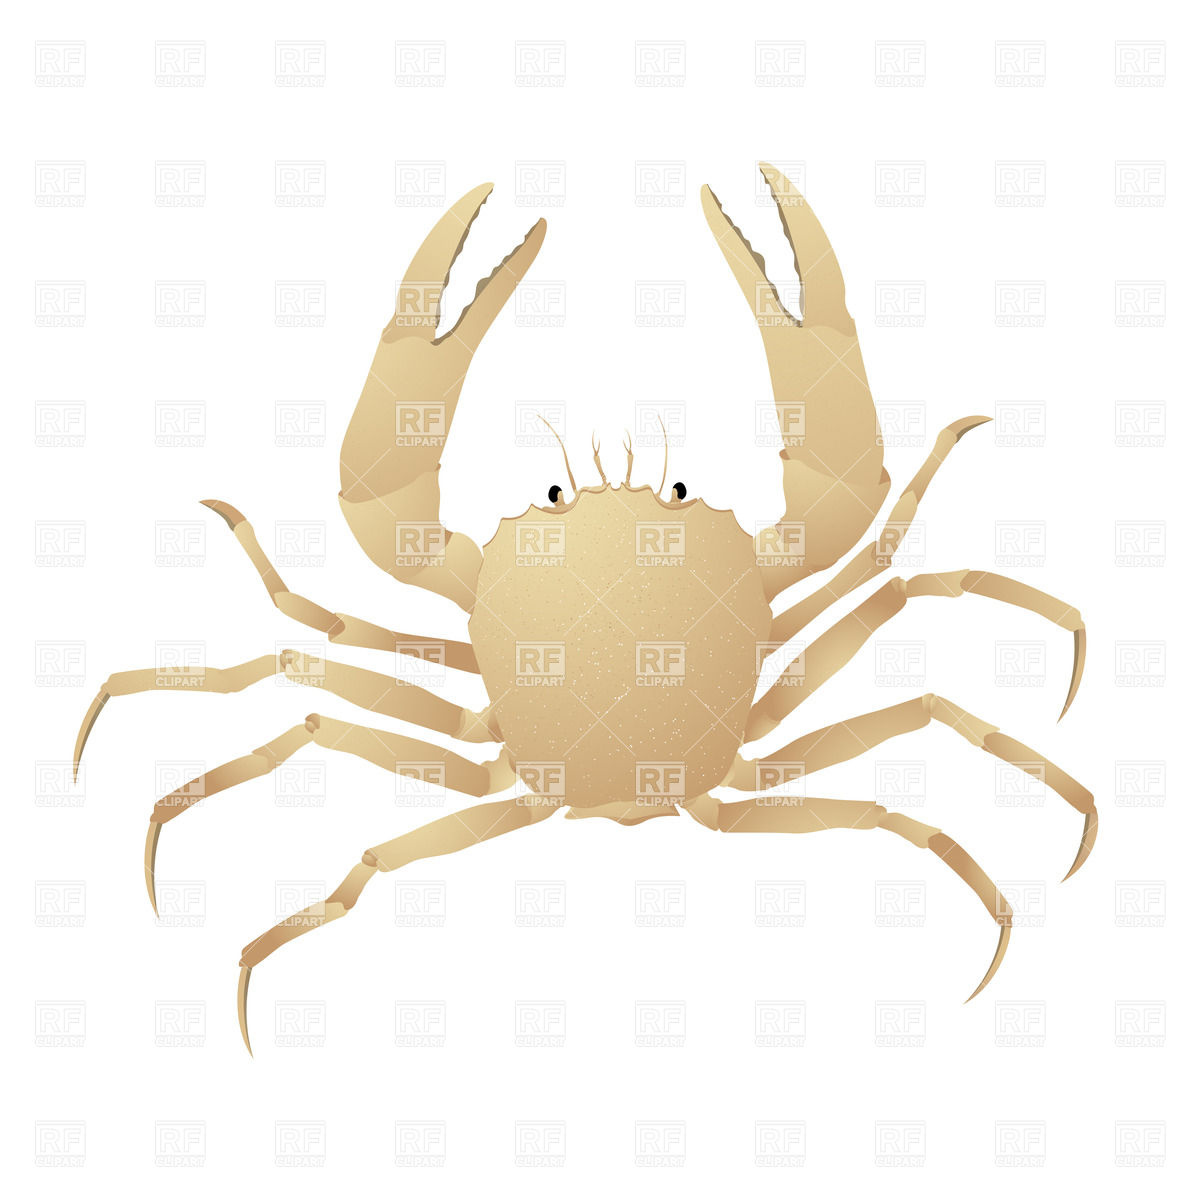 1200x1200 Crab Vector Image Vector Artwork Of Plants And Animals Lirch